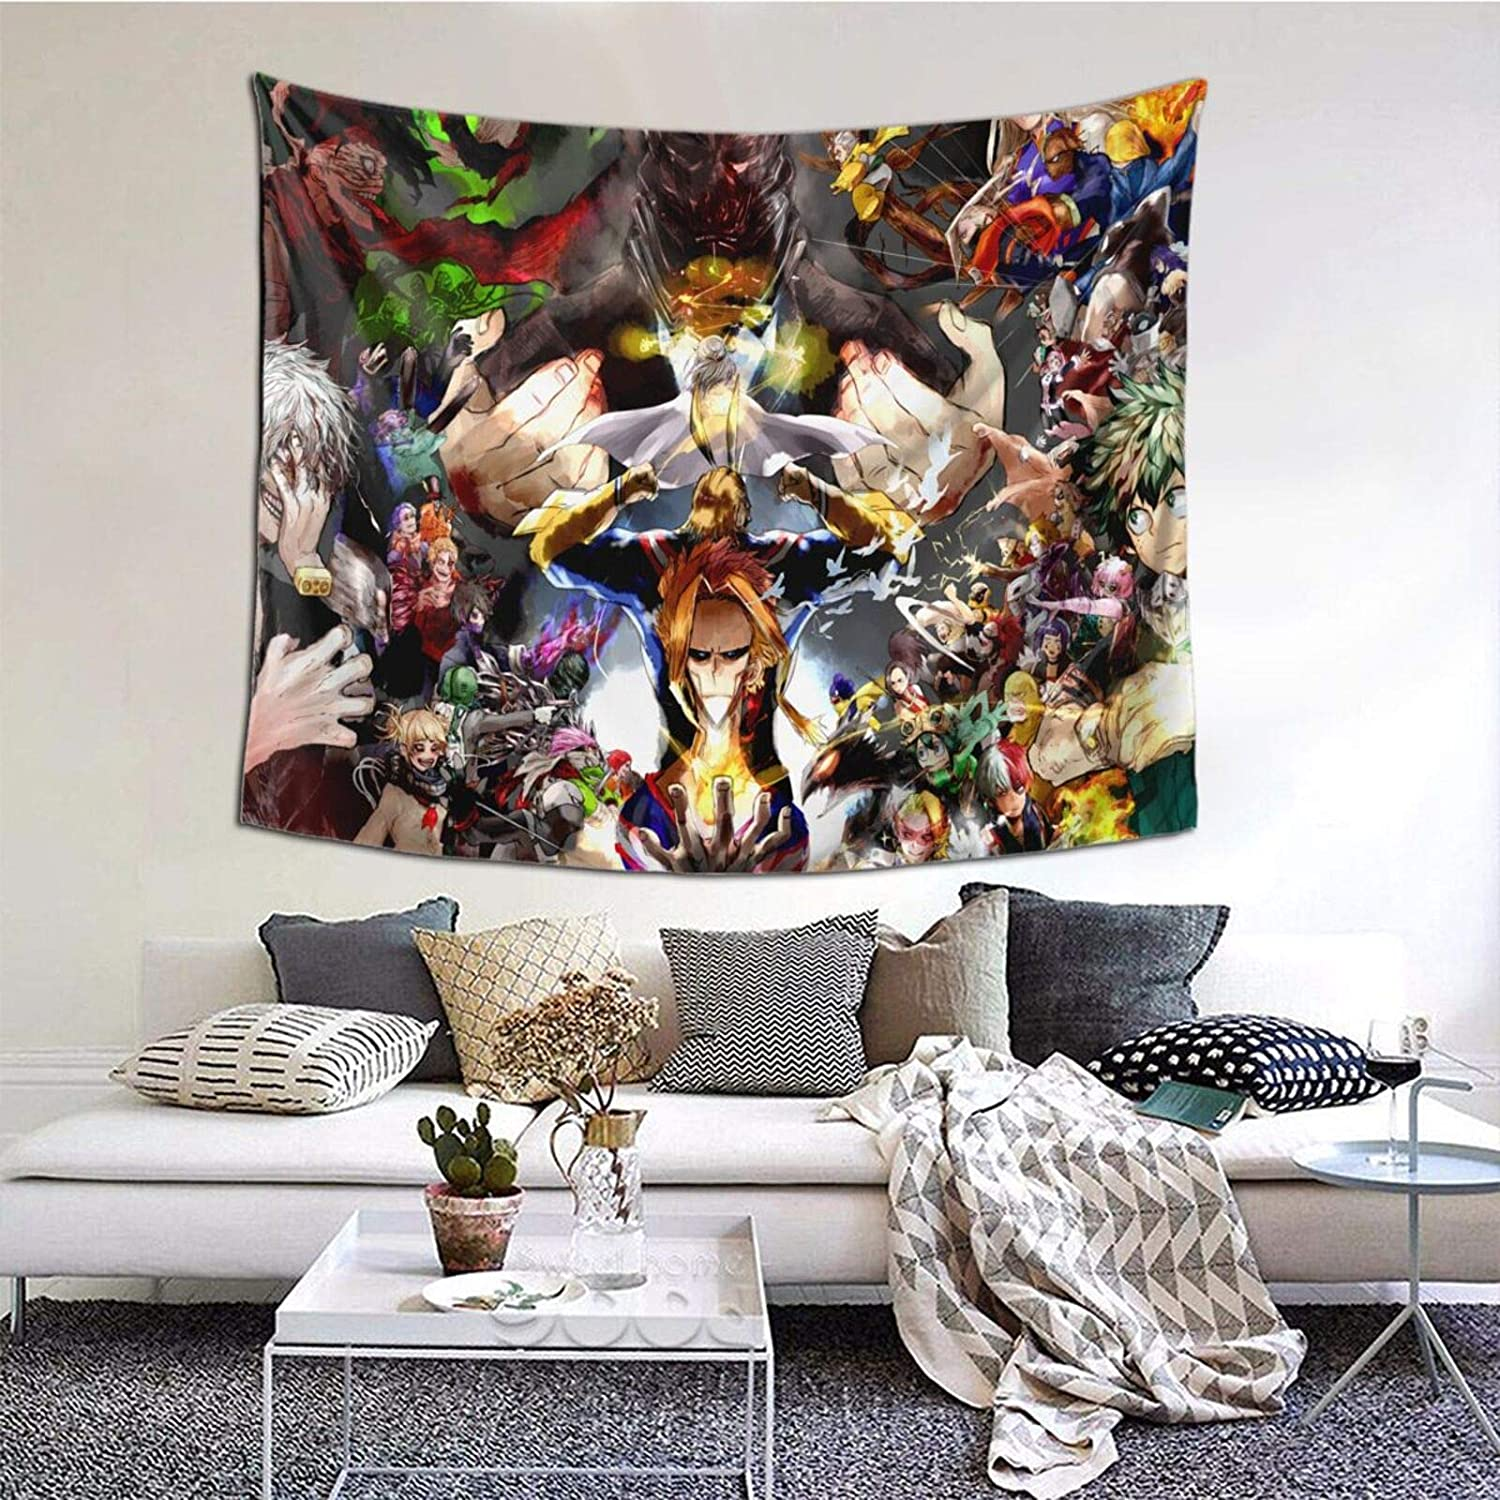 YIYI SMILE My Hero Academia Tapestry Wall Hanging Home Decor for Gifts Bedroom Living Room Decoration 50X60 inch -03